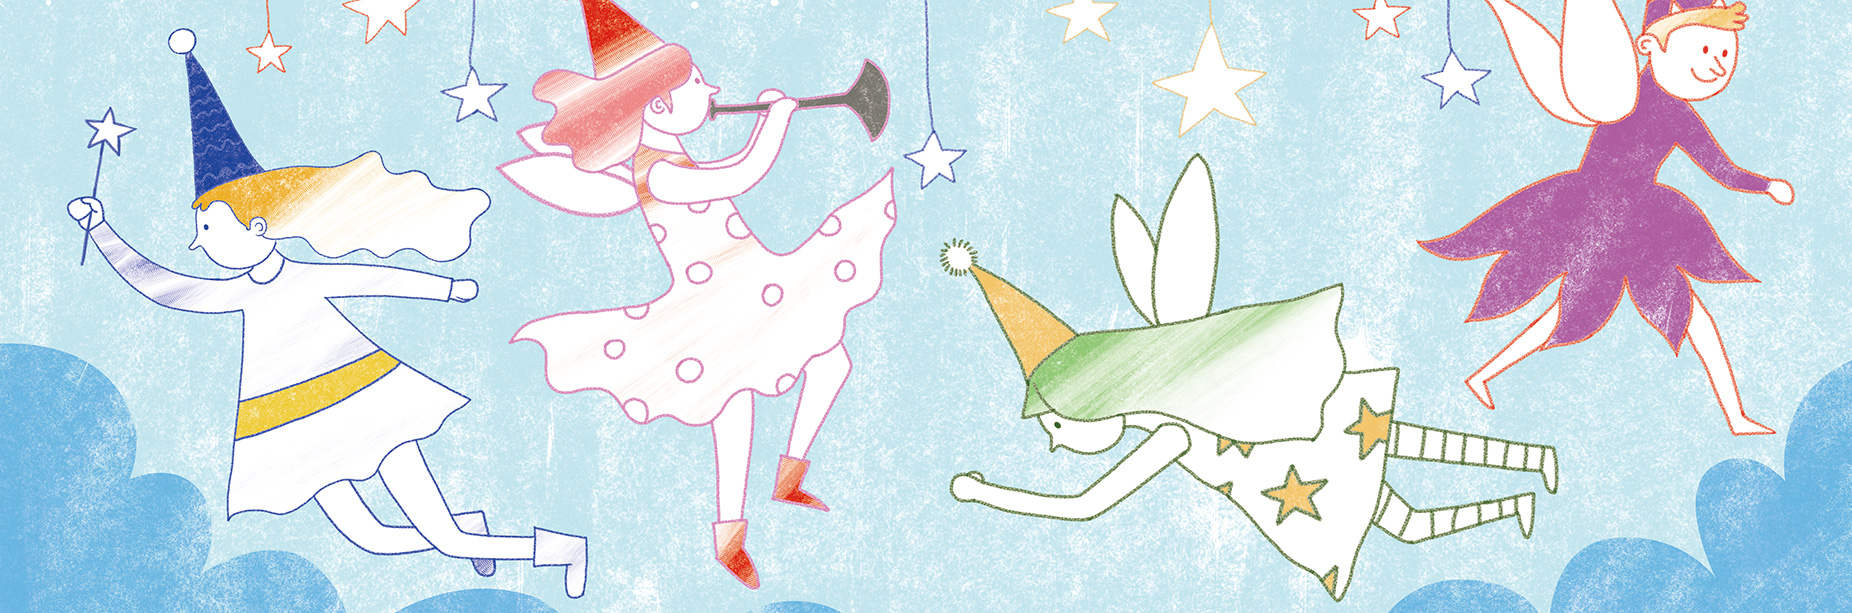 coloring-book-banner_03